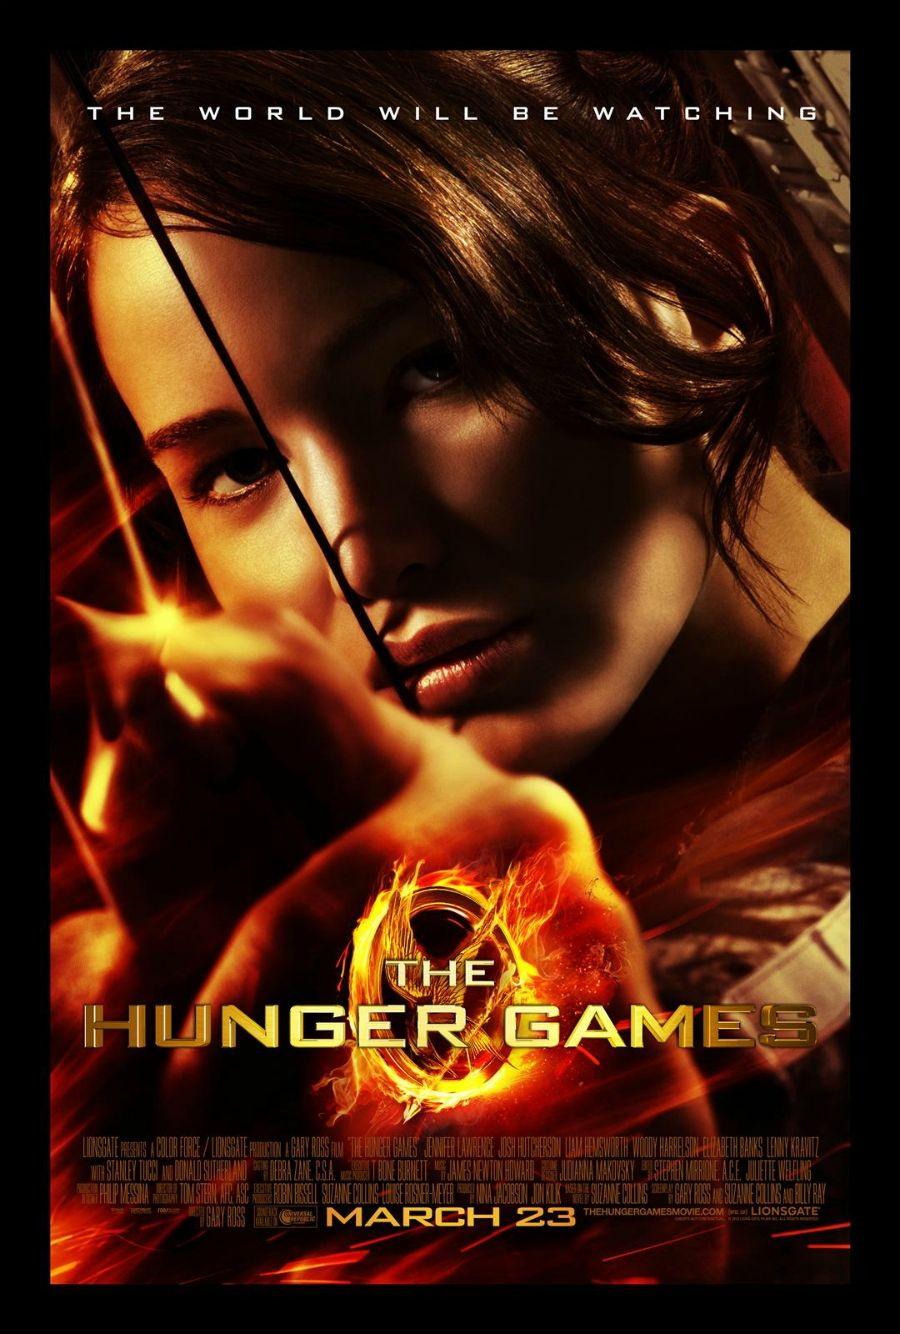 Movie Posters The Original Hunger Games Character Movie Posters On Meet In The Lobby Hunger Games Films Hunger Games Poster Hunger Games Movies